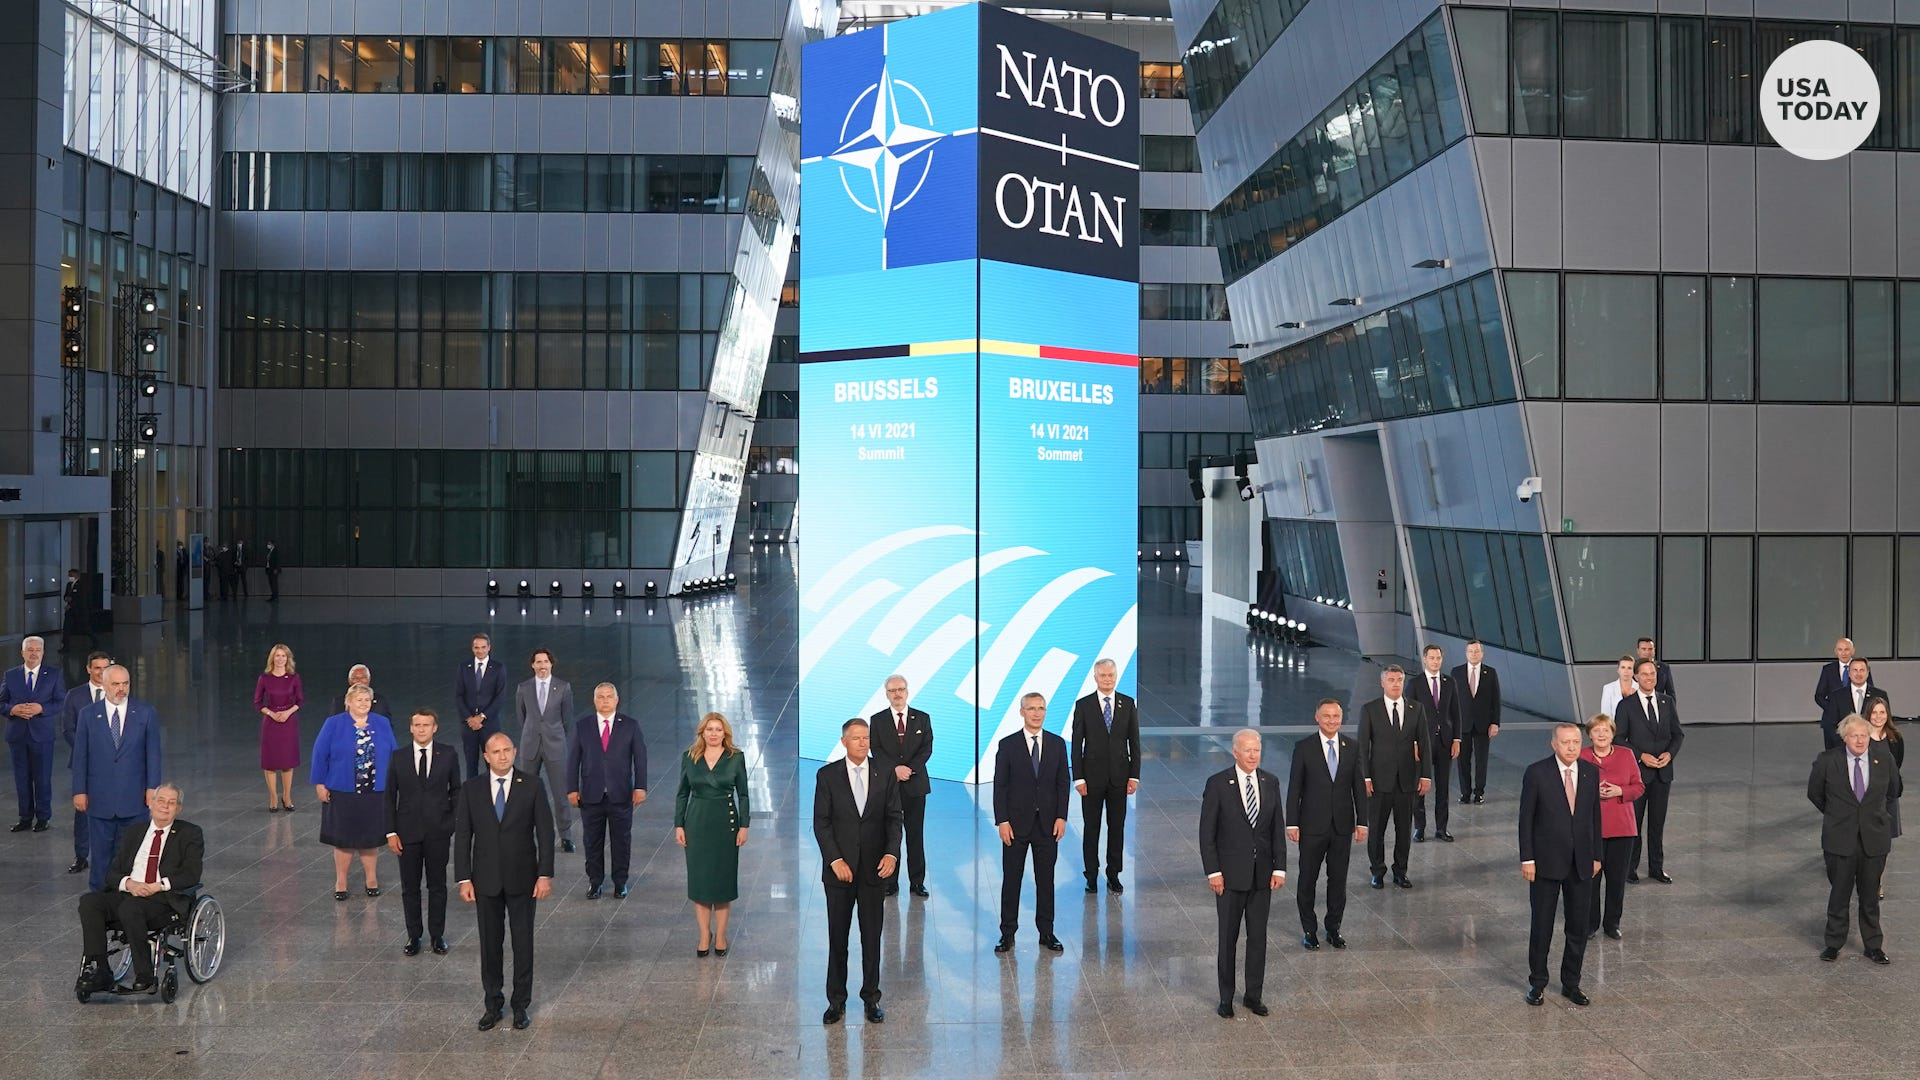 Here's everything you need to know about NATO and what it does